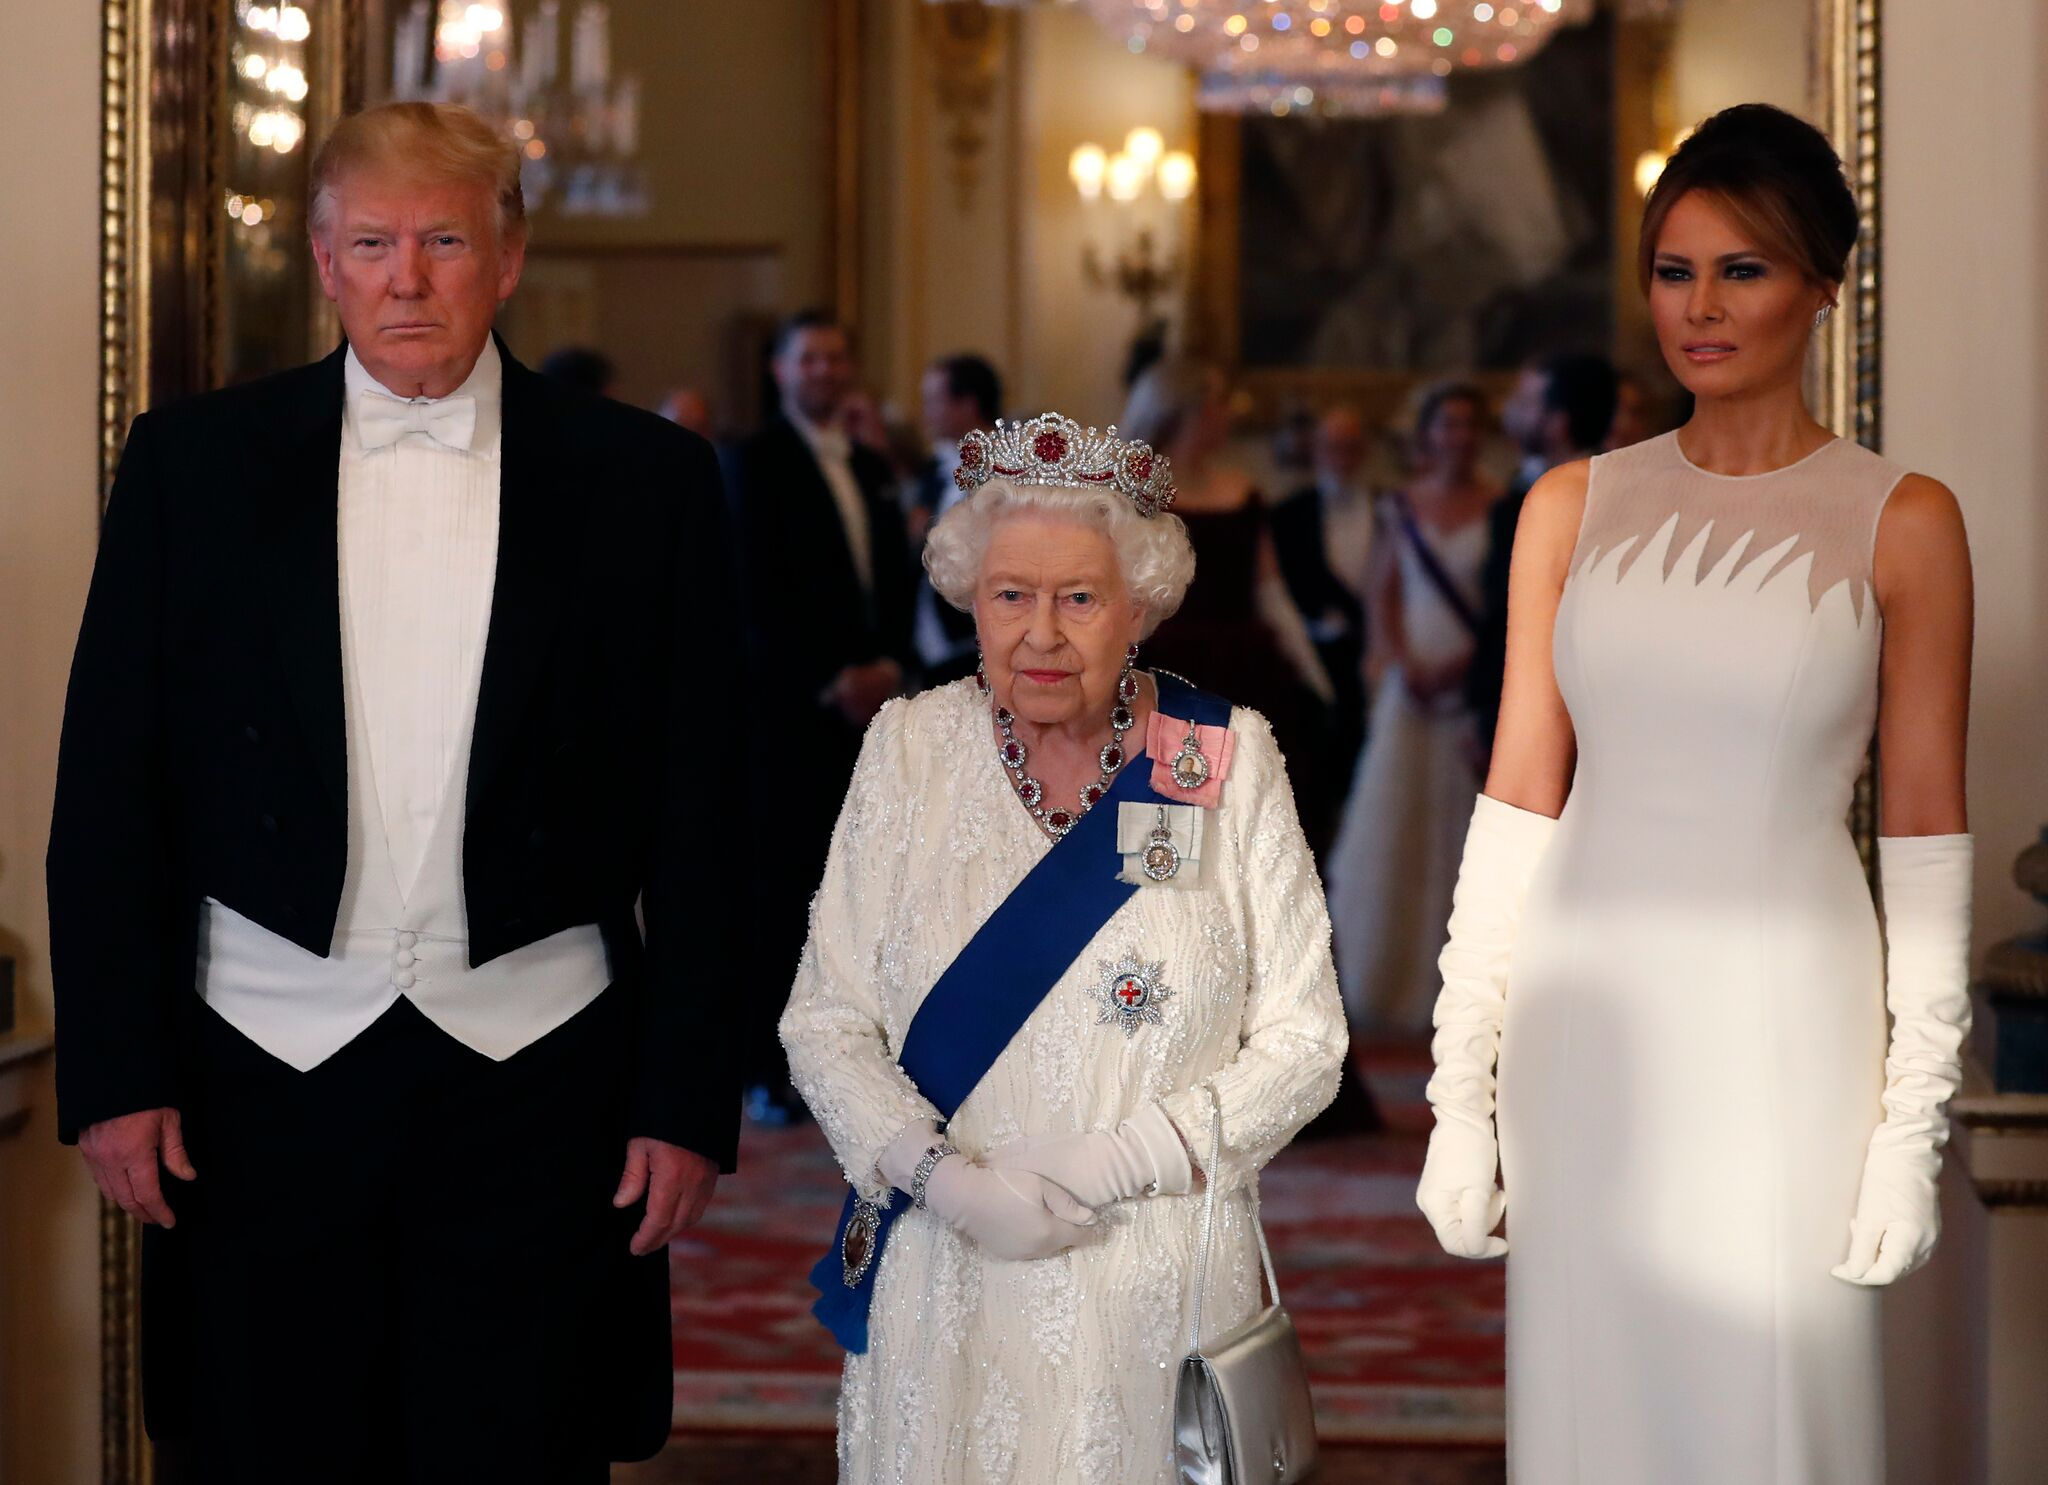 The Trumps meet the Queen during a state visit to the UK | Getty Images